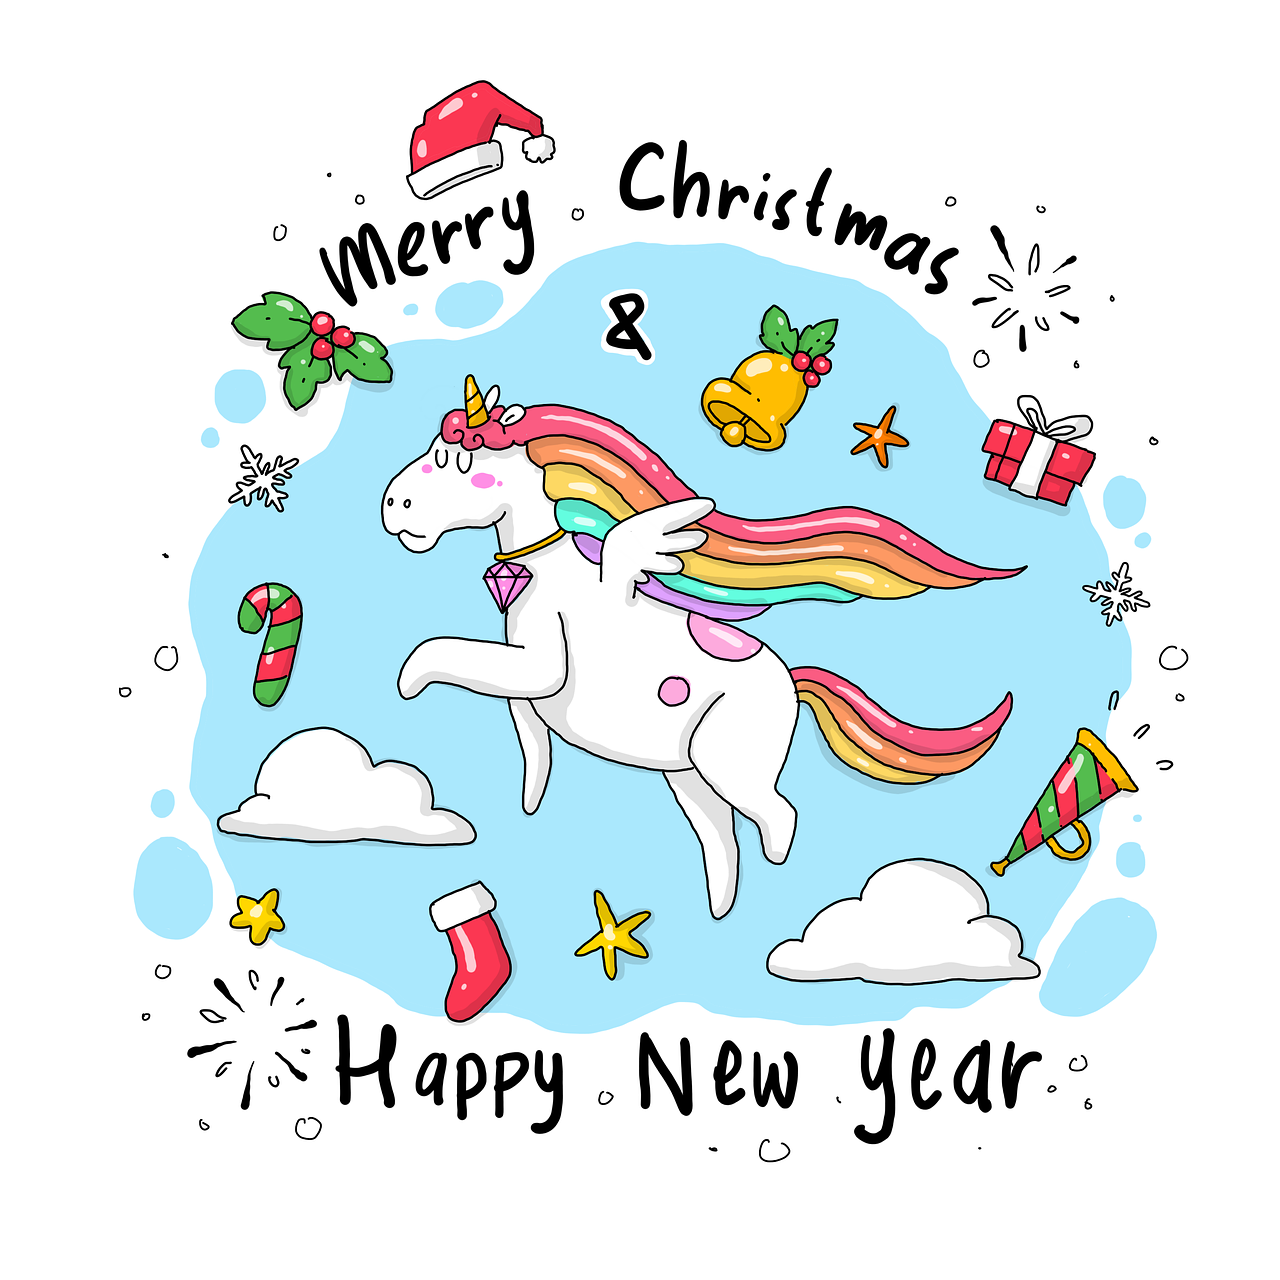 A Merry Christmas for Unicorn